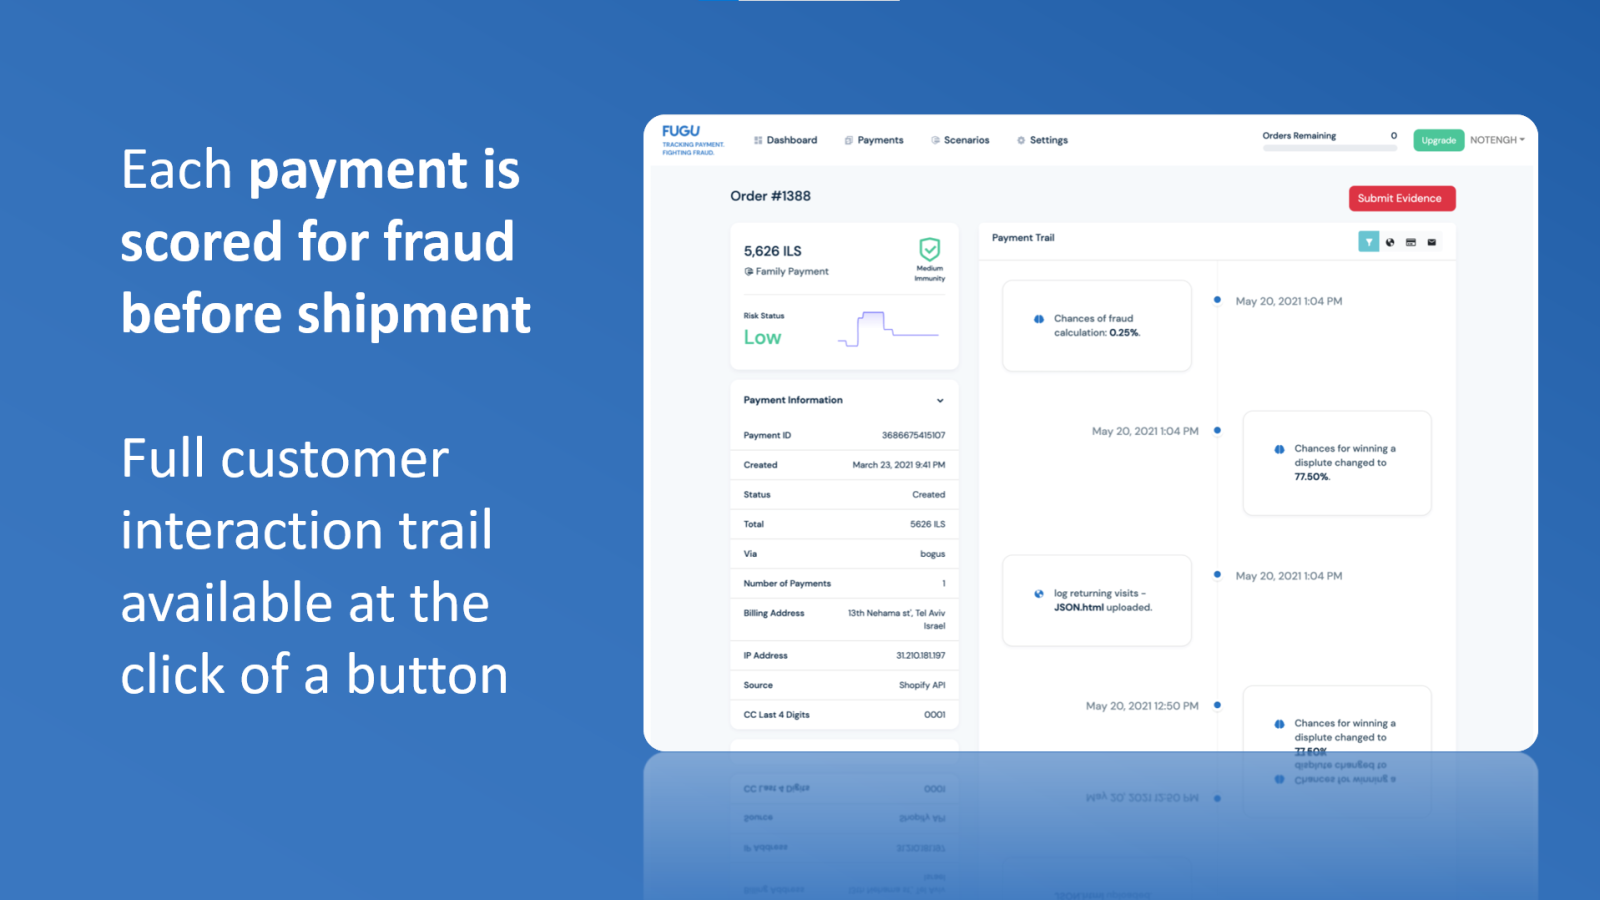 Customer interaction points are logged & analyzed per payment